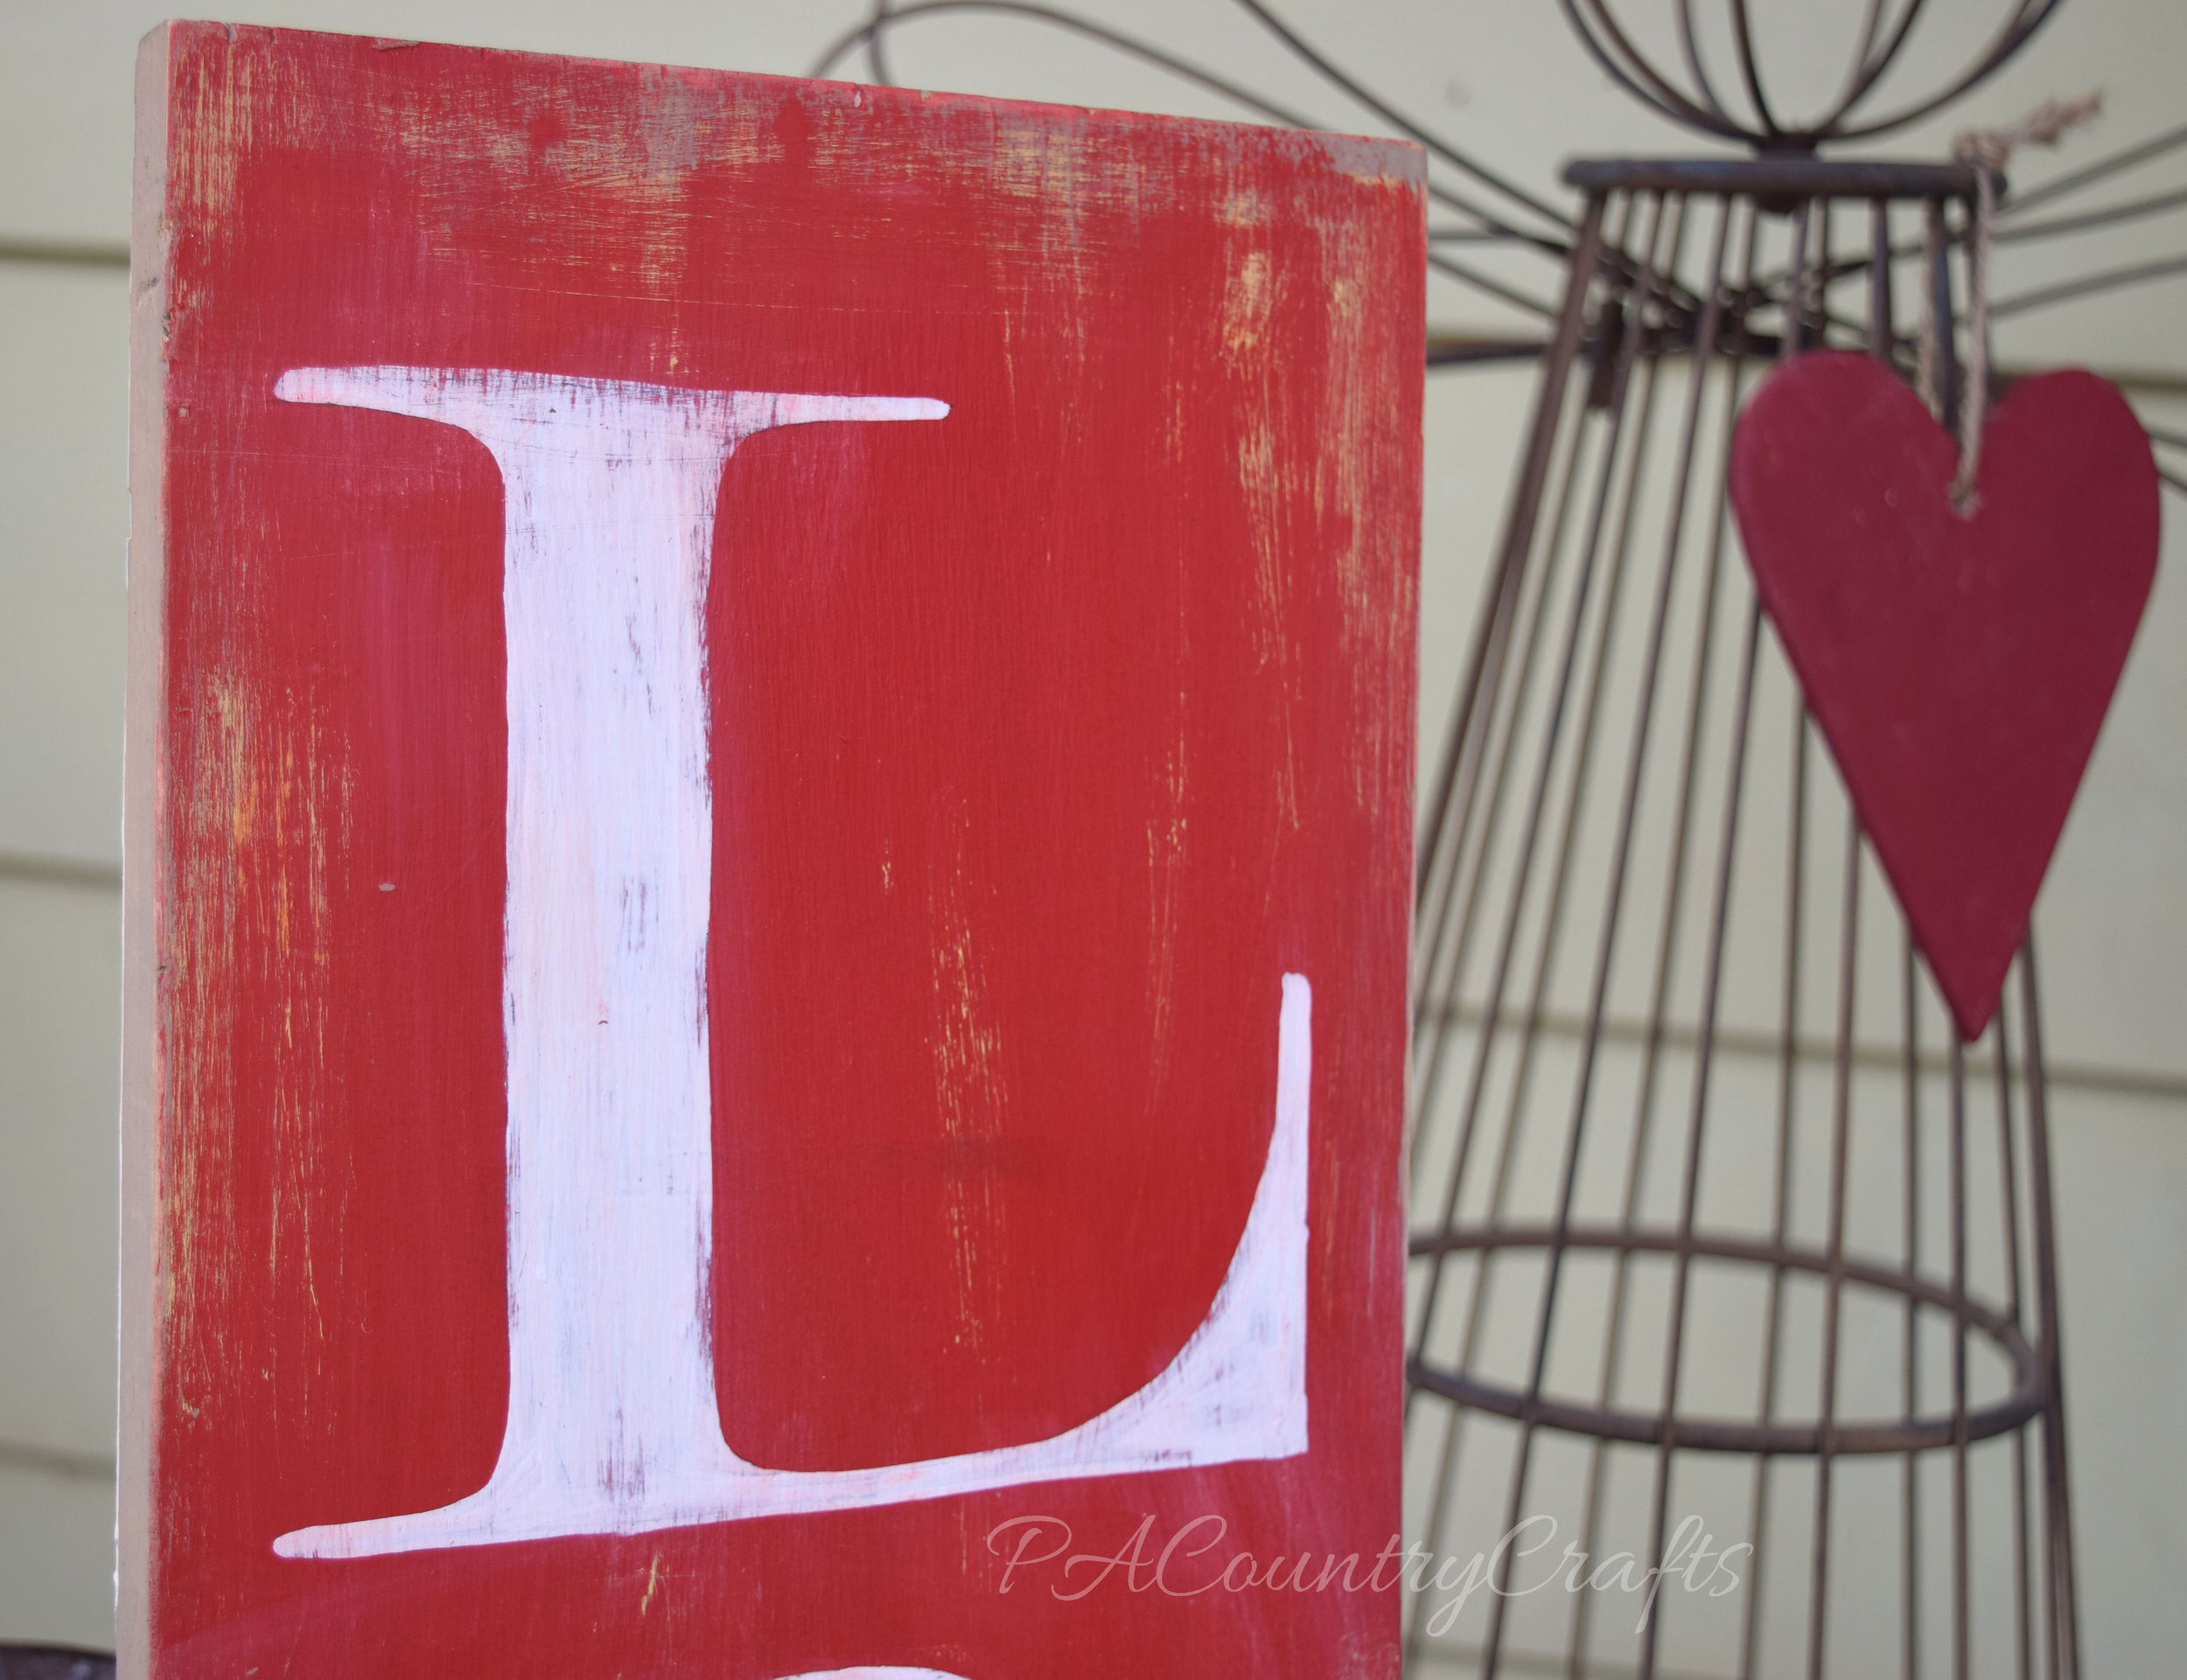 rustic painted letter L on red and white sign